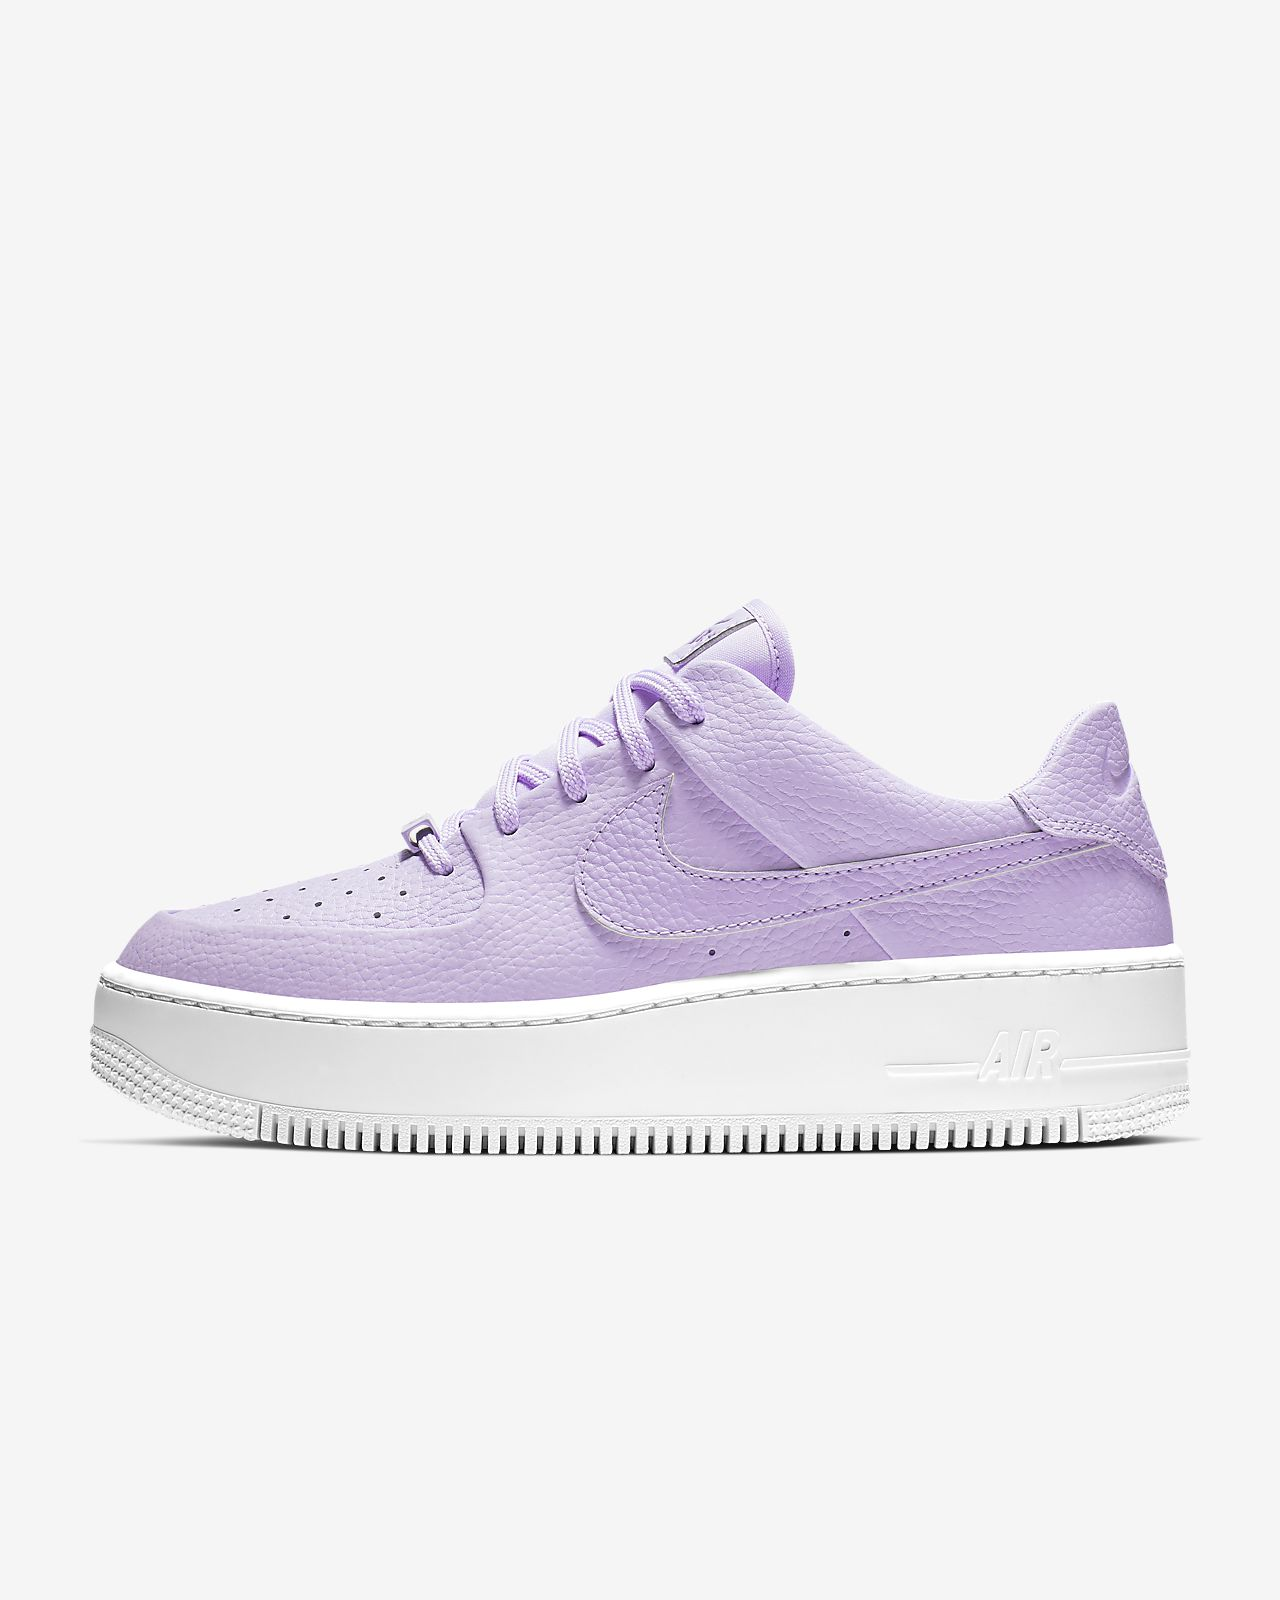 check out 868b9 39967 Buty damskie Nike Air Force 1 Sage Low. Nike.com PL